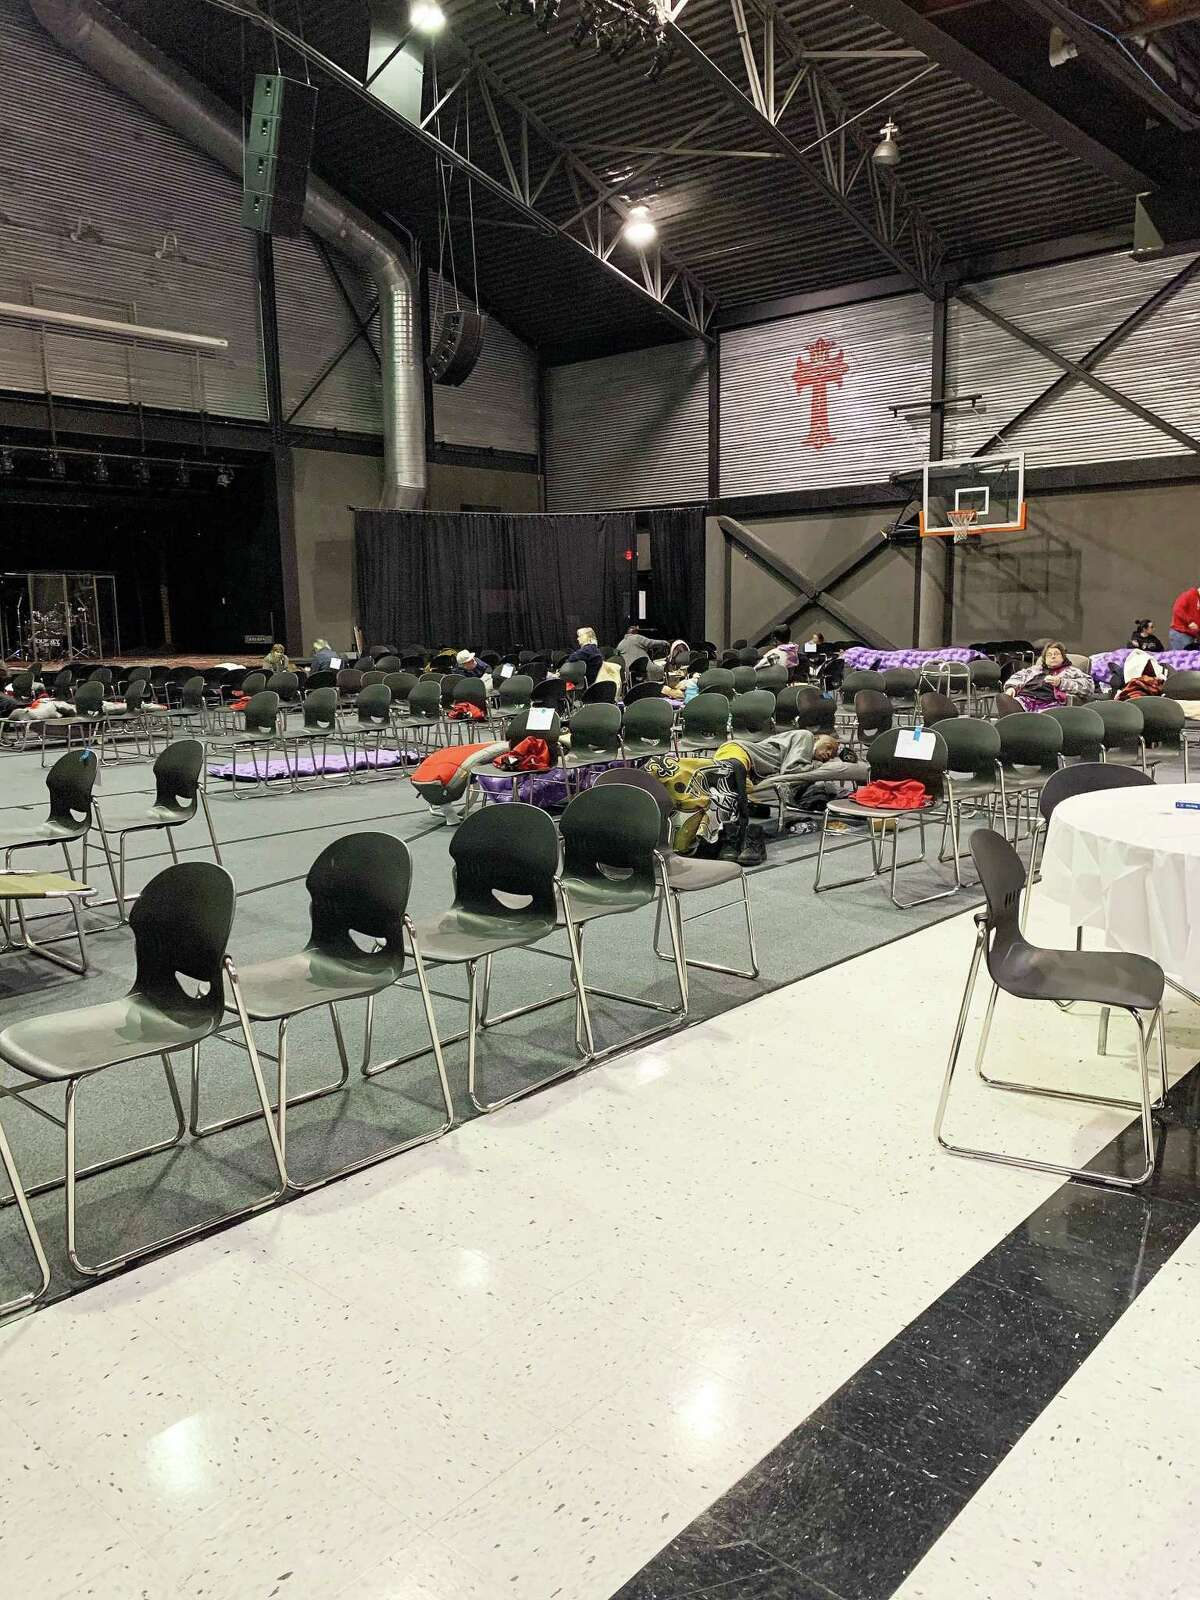 Volunteers used chairs to divide out the gym into 10-foot by 10-foot cubicles for each person or family to maintain social distancing per Covid-19 protocols. As of Friday, many were still hunkered down awaiting warmer temperatures before transitioning back to their normal life.